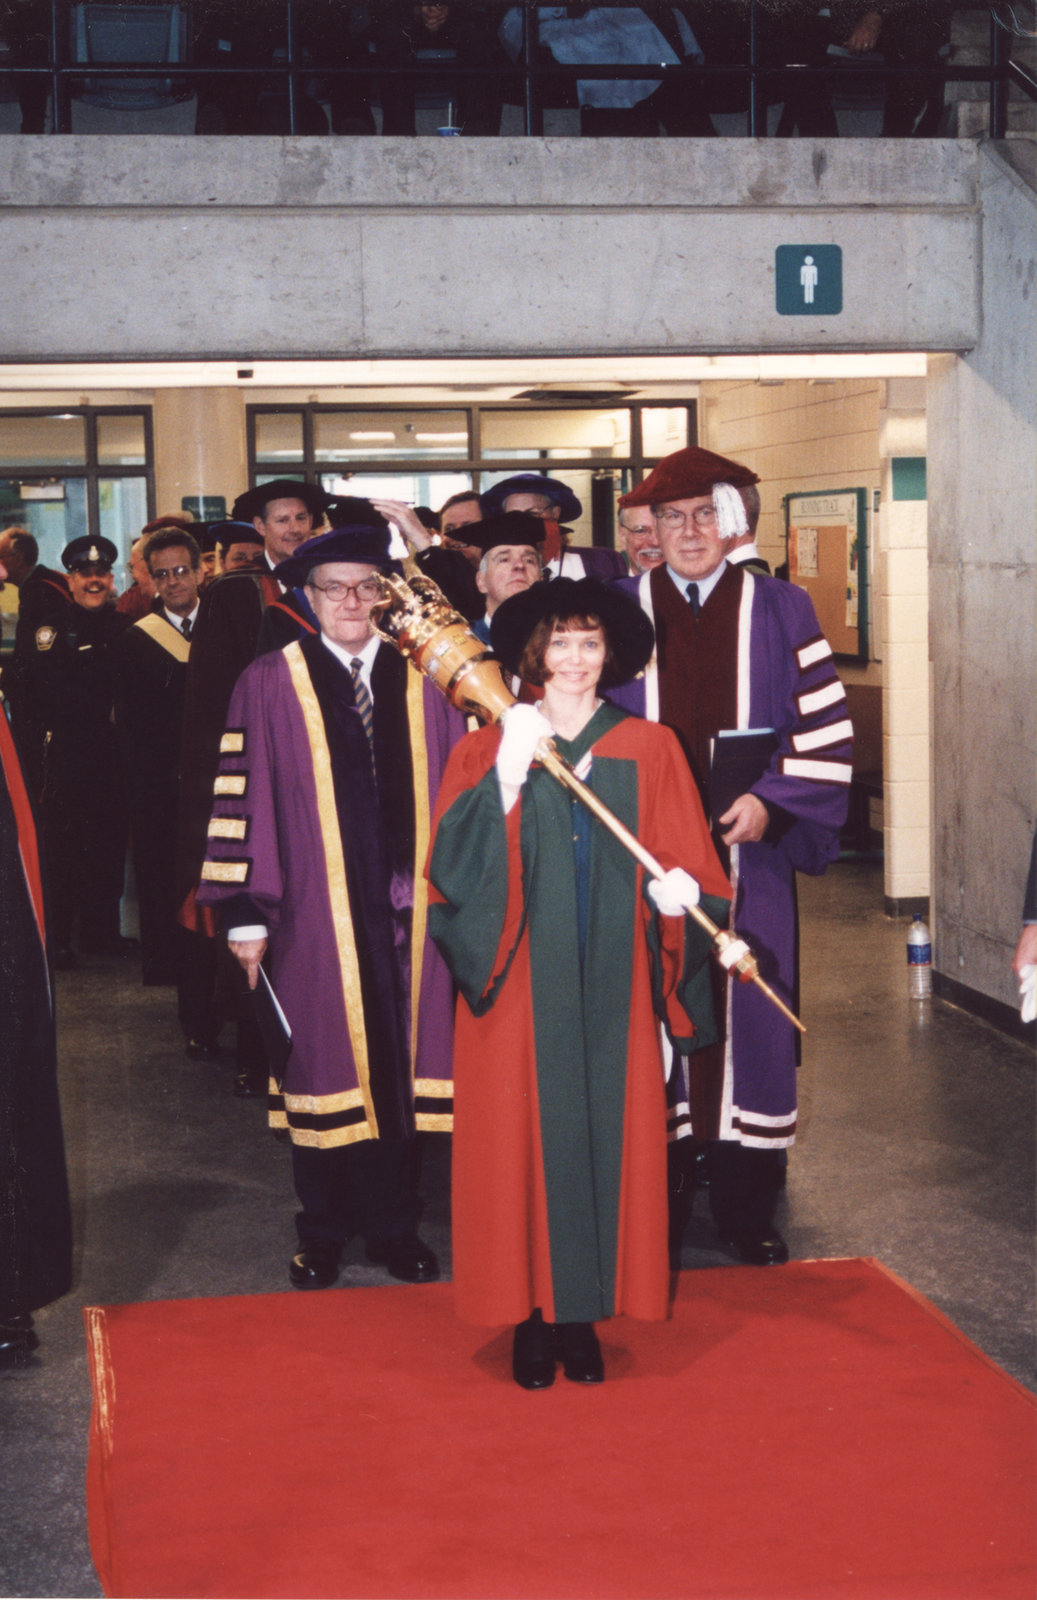 Fall convocation 2001, Wilfrid Laurier University